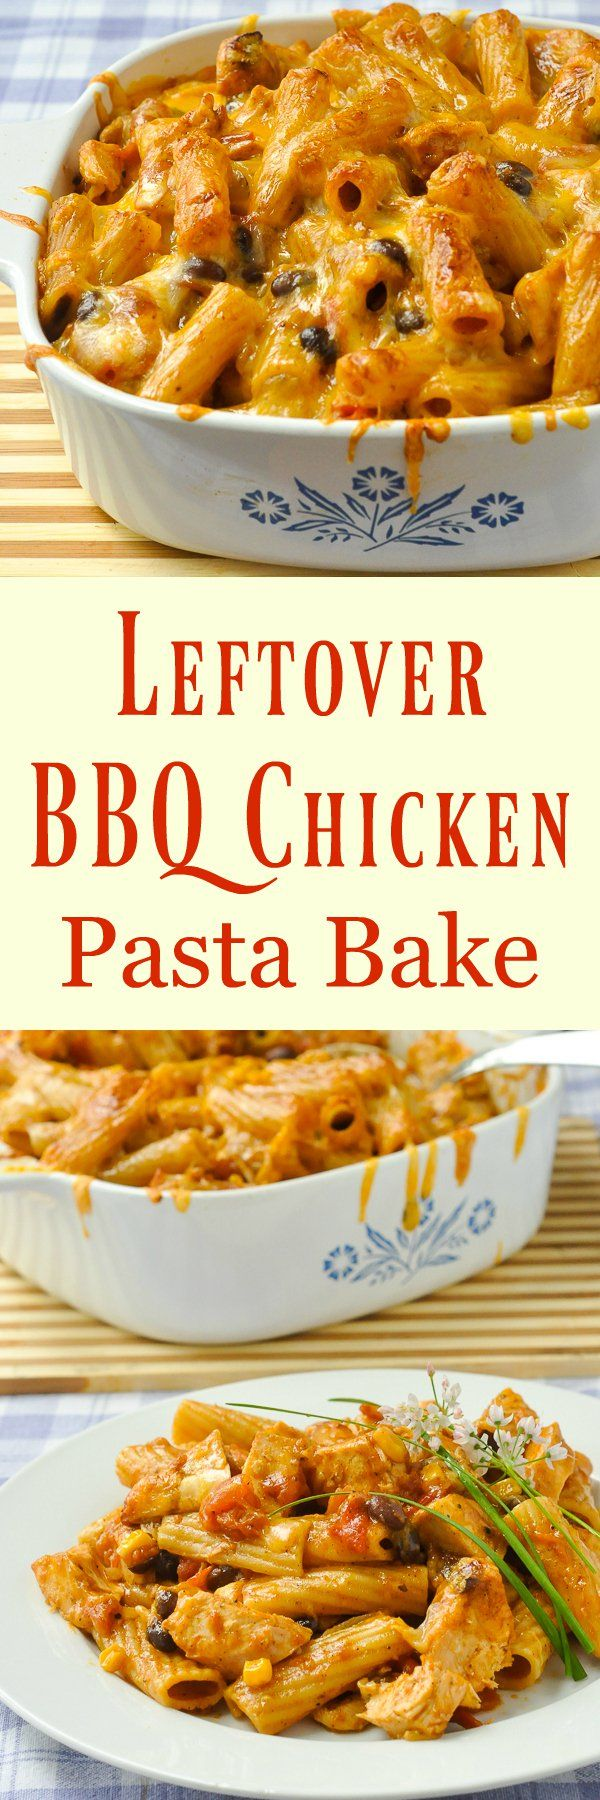 BBQ Chicken Pasta Bake - turn leftover chicken into a delicious comfort food meal in under an hour. The whole family will love it.